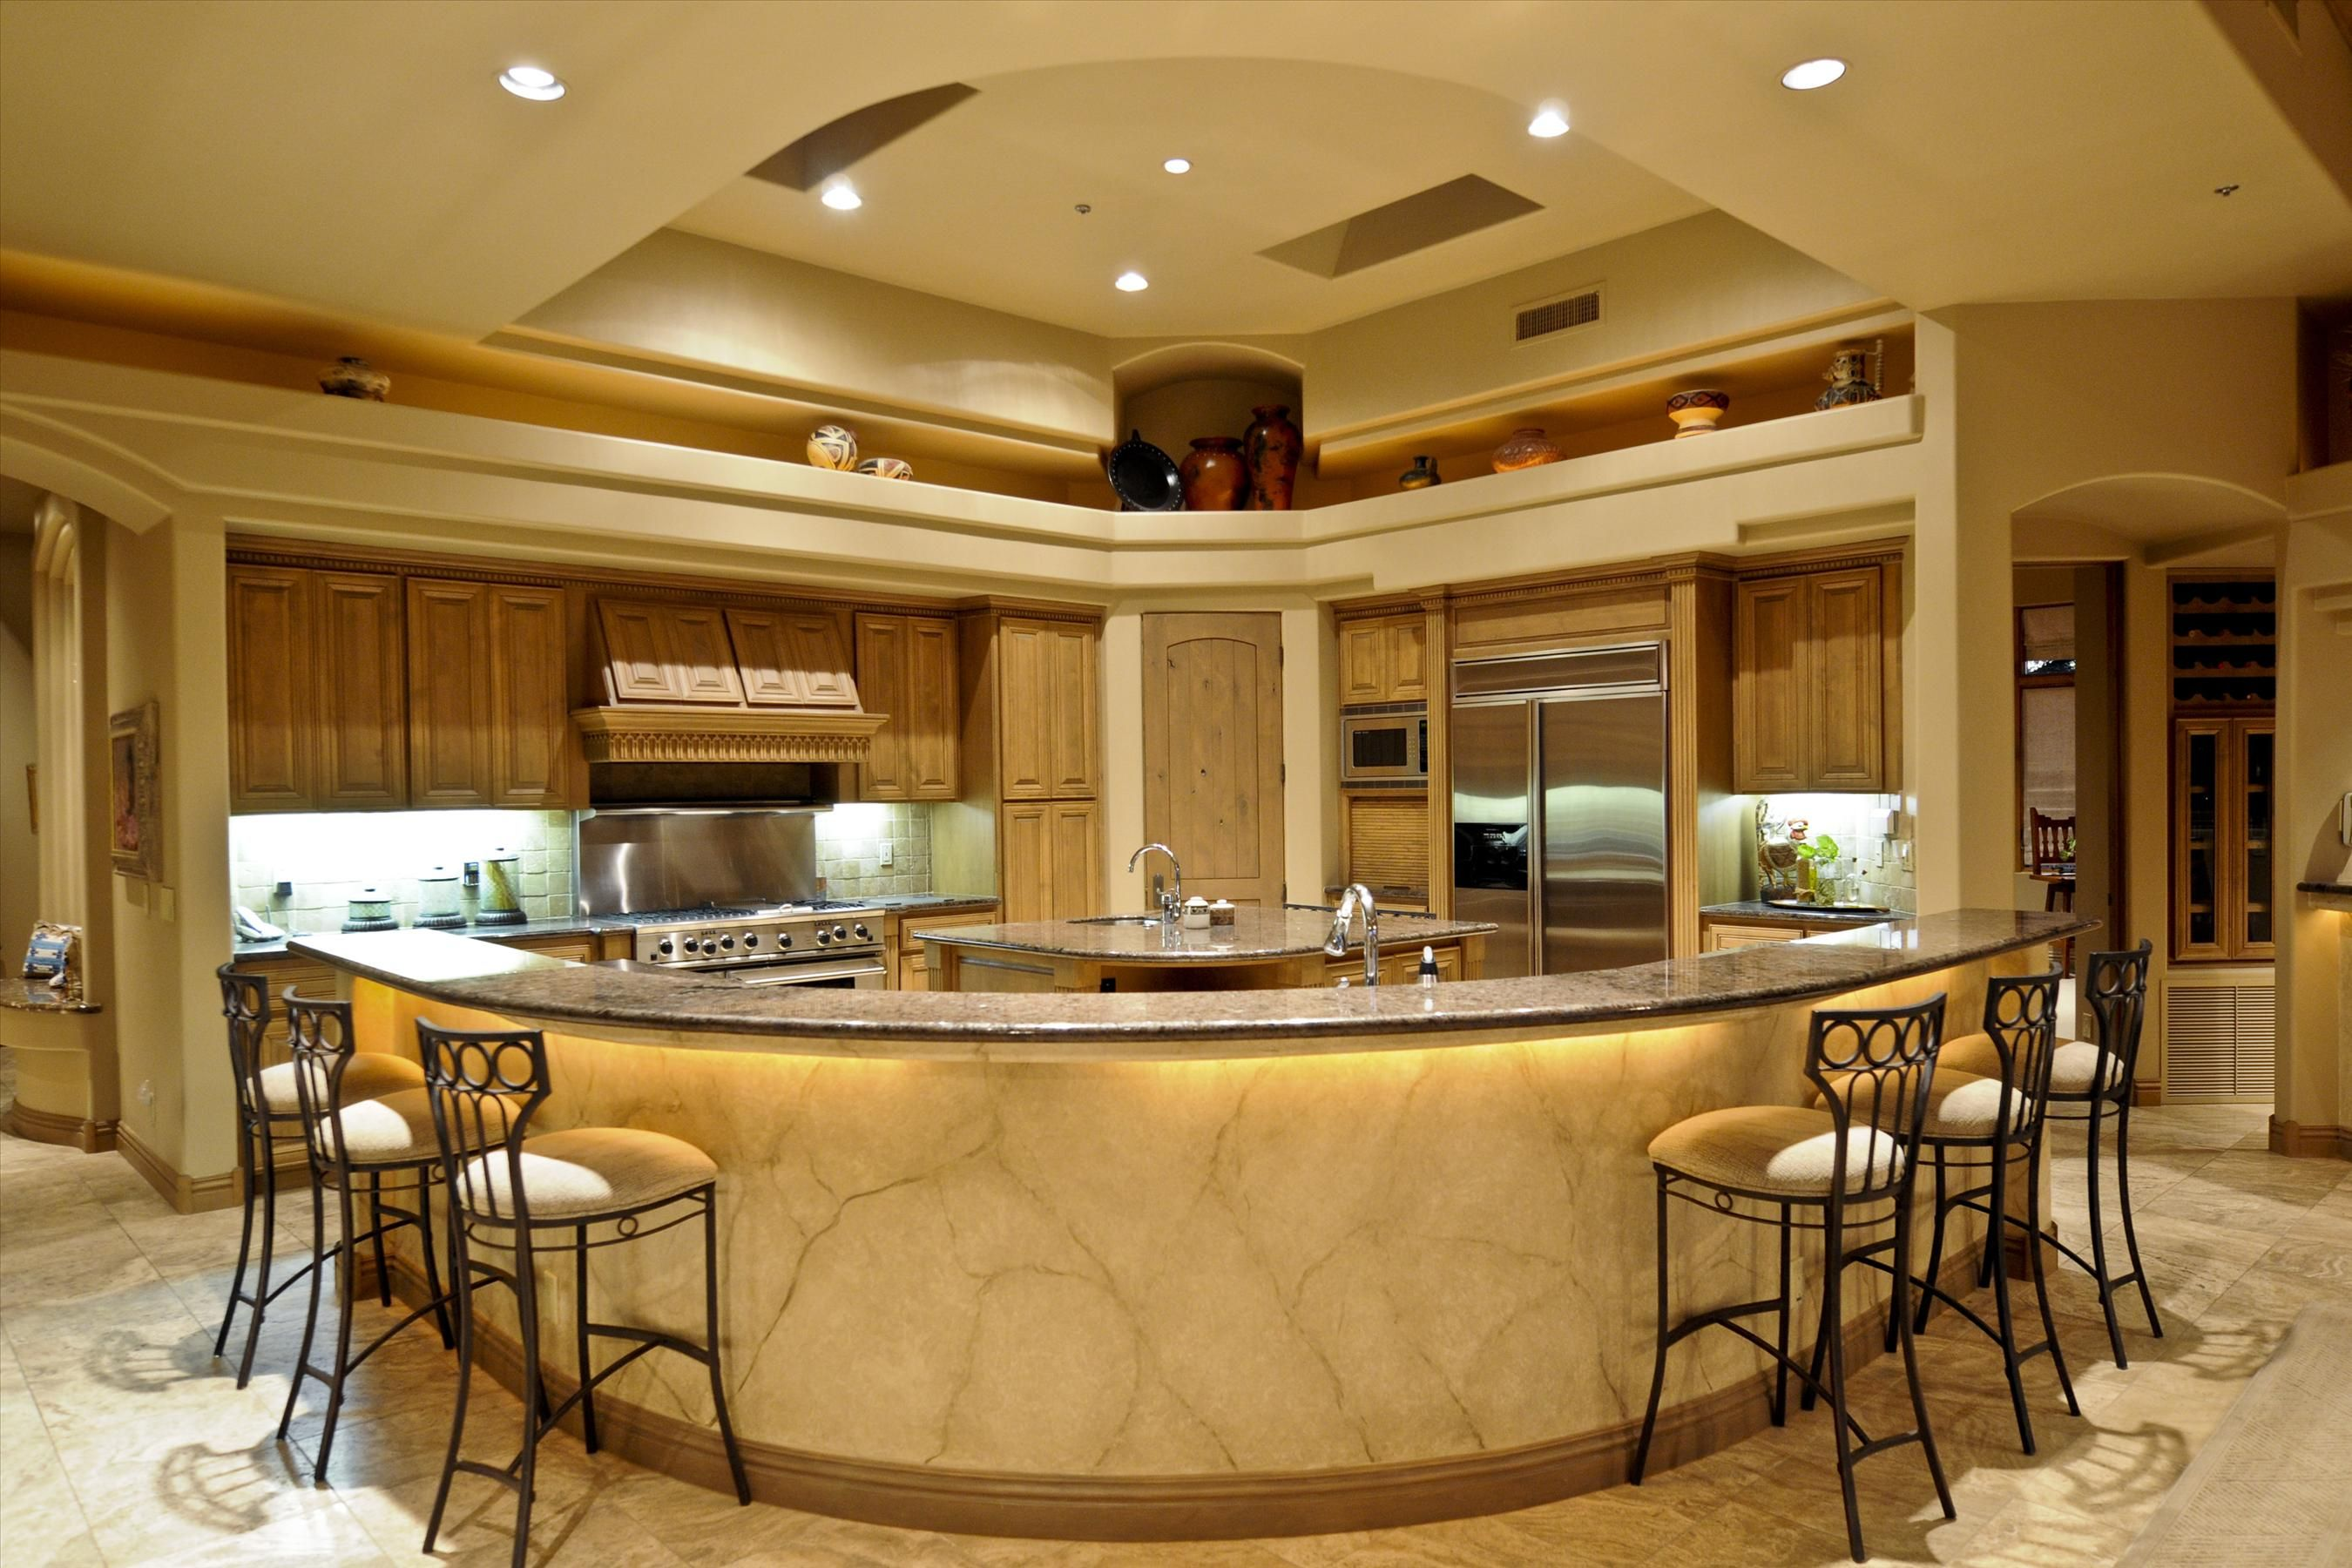 Premier luxury kitchens custom designed and for Luxury home kitchen designs